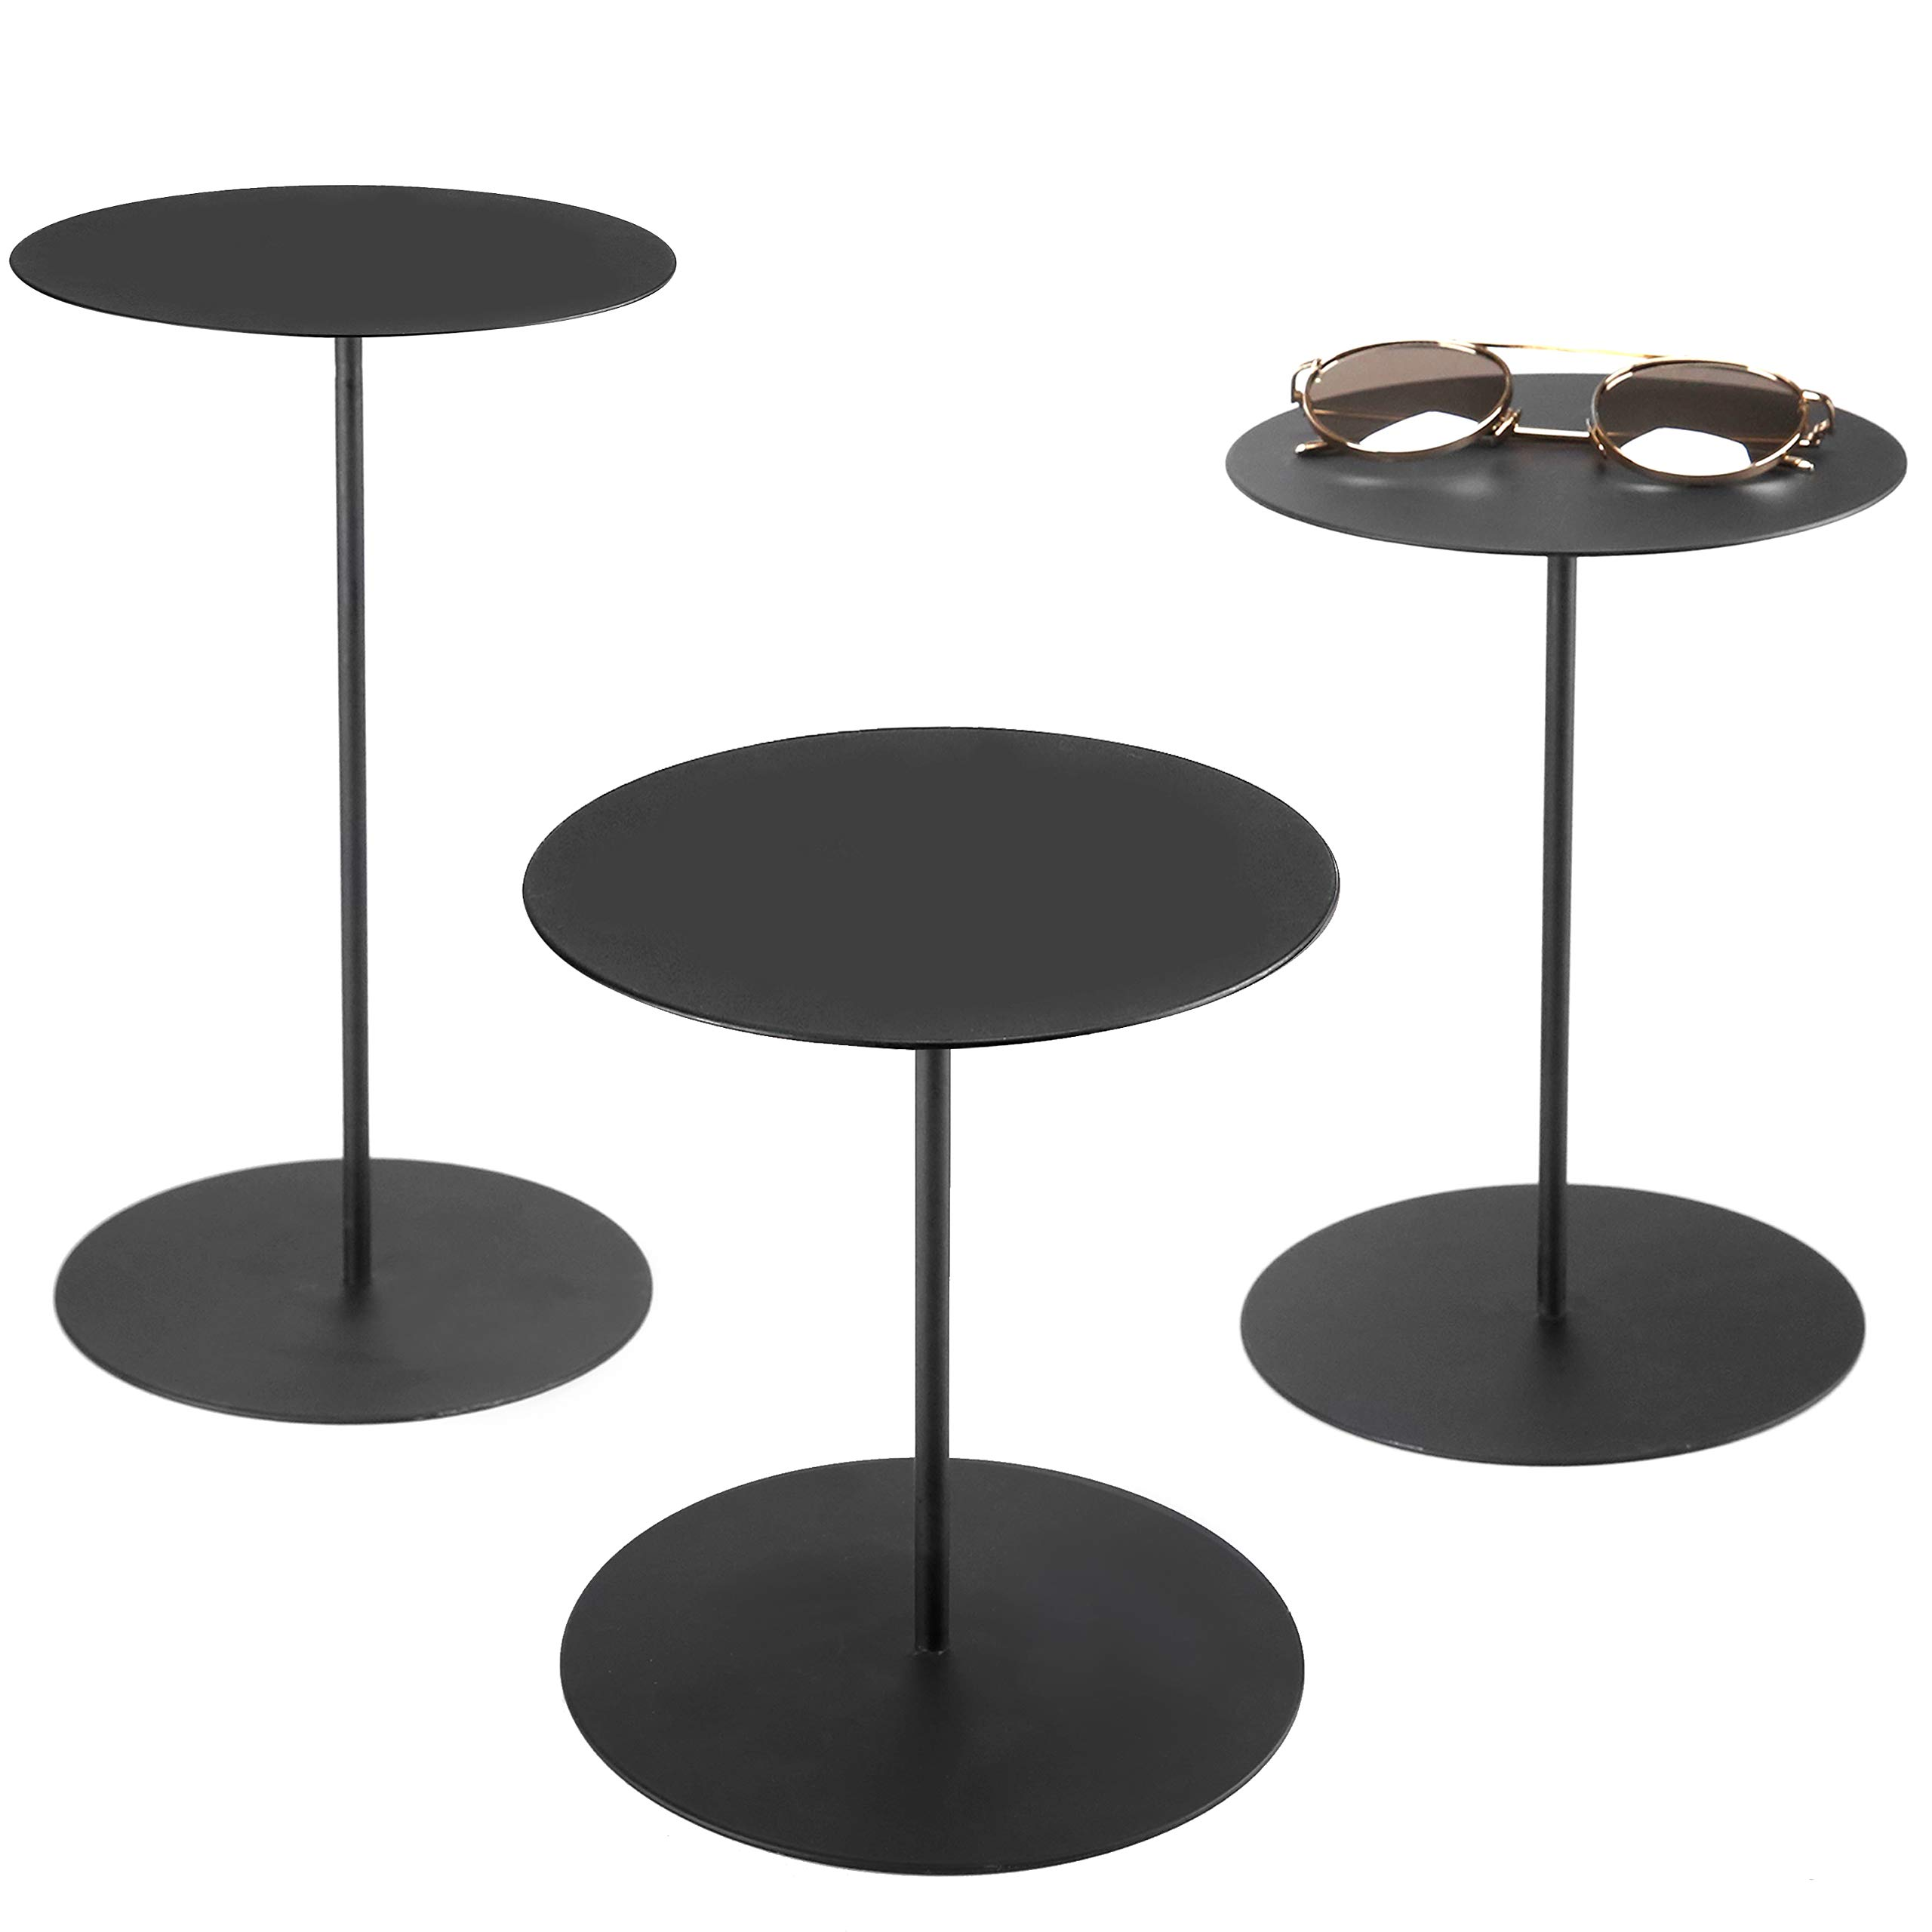 Set of 3 Black Metal Retail Display Risers, Various Height Jewelry and Accessories Stand by MyGift